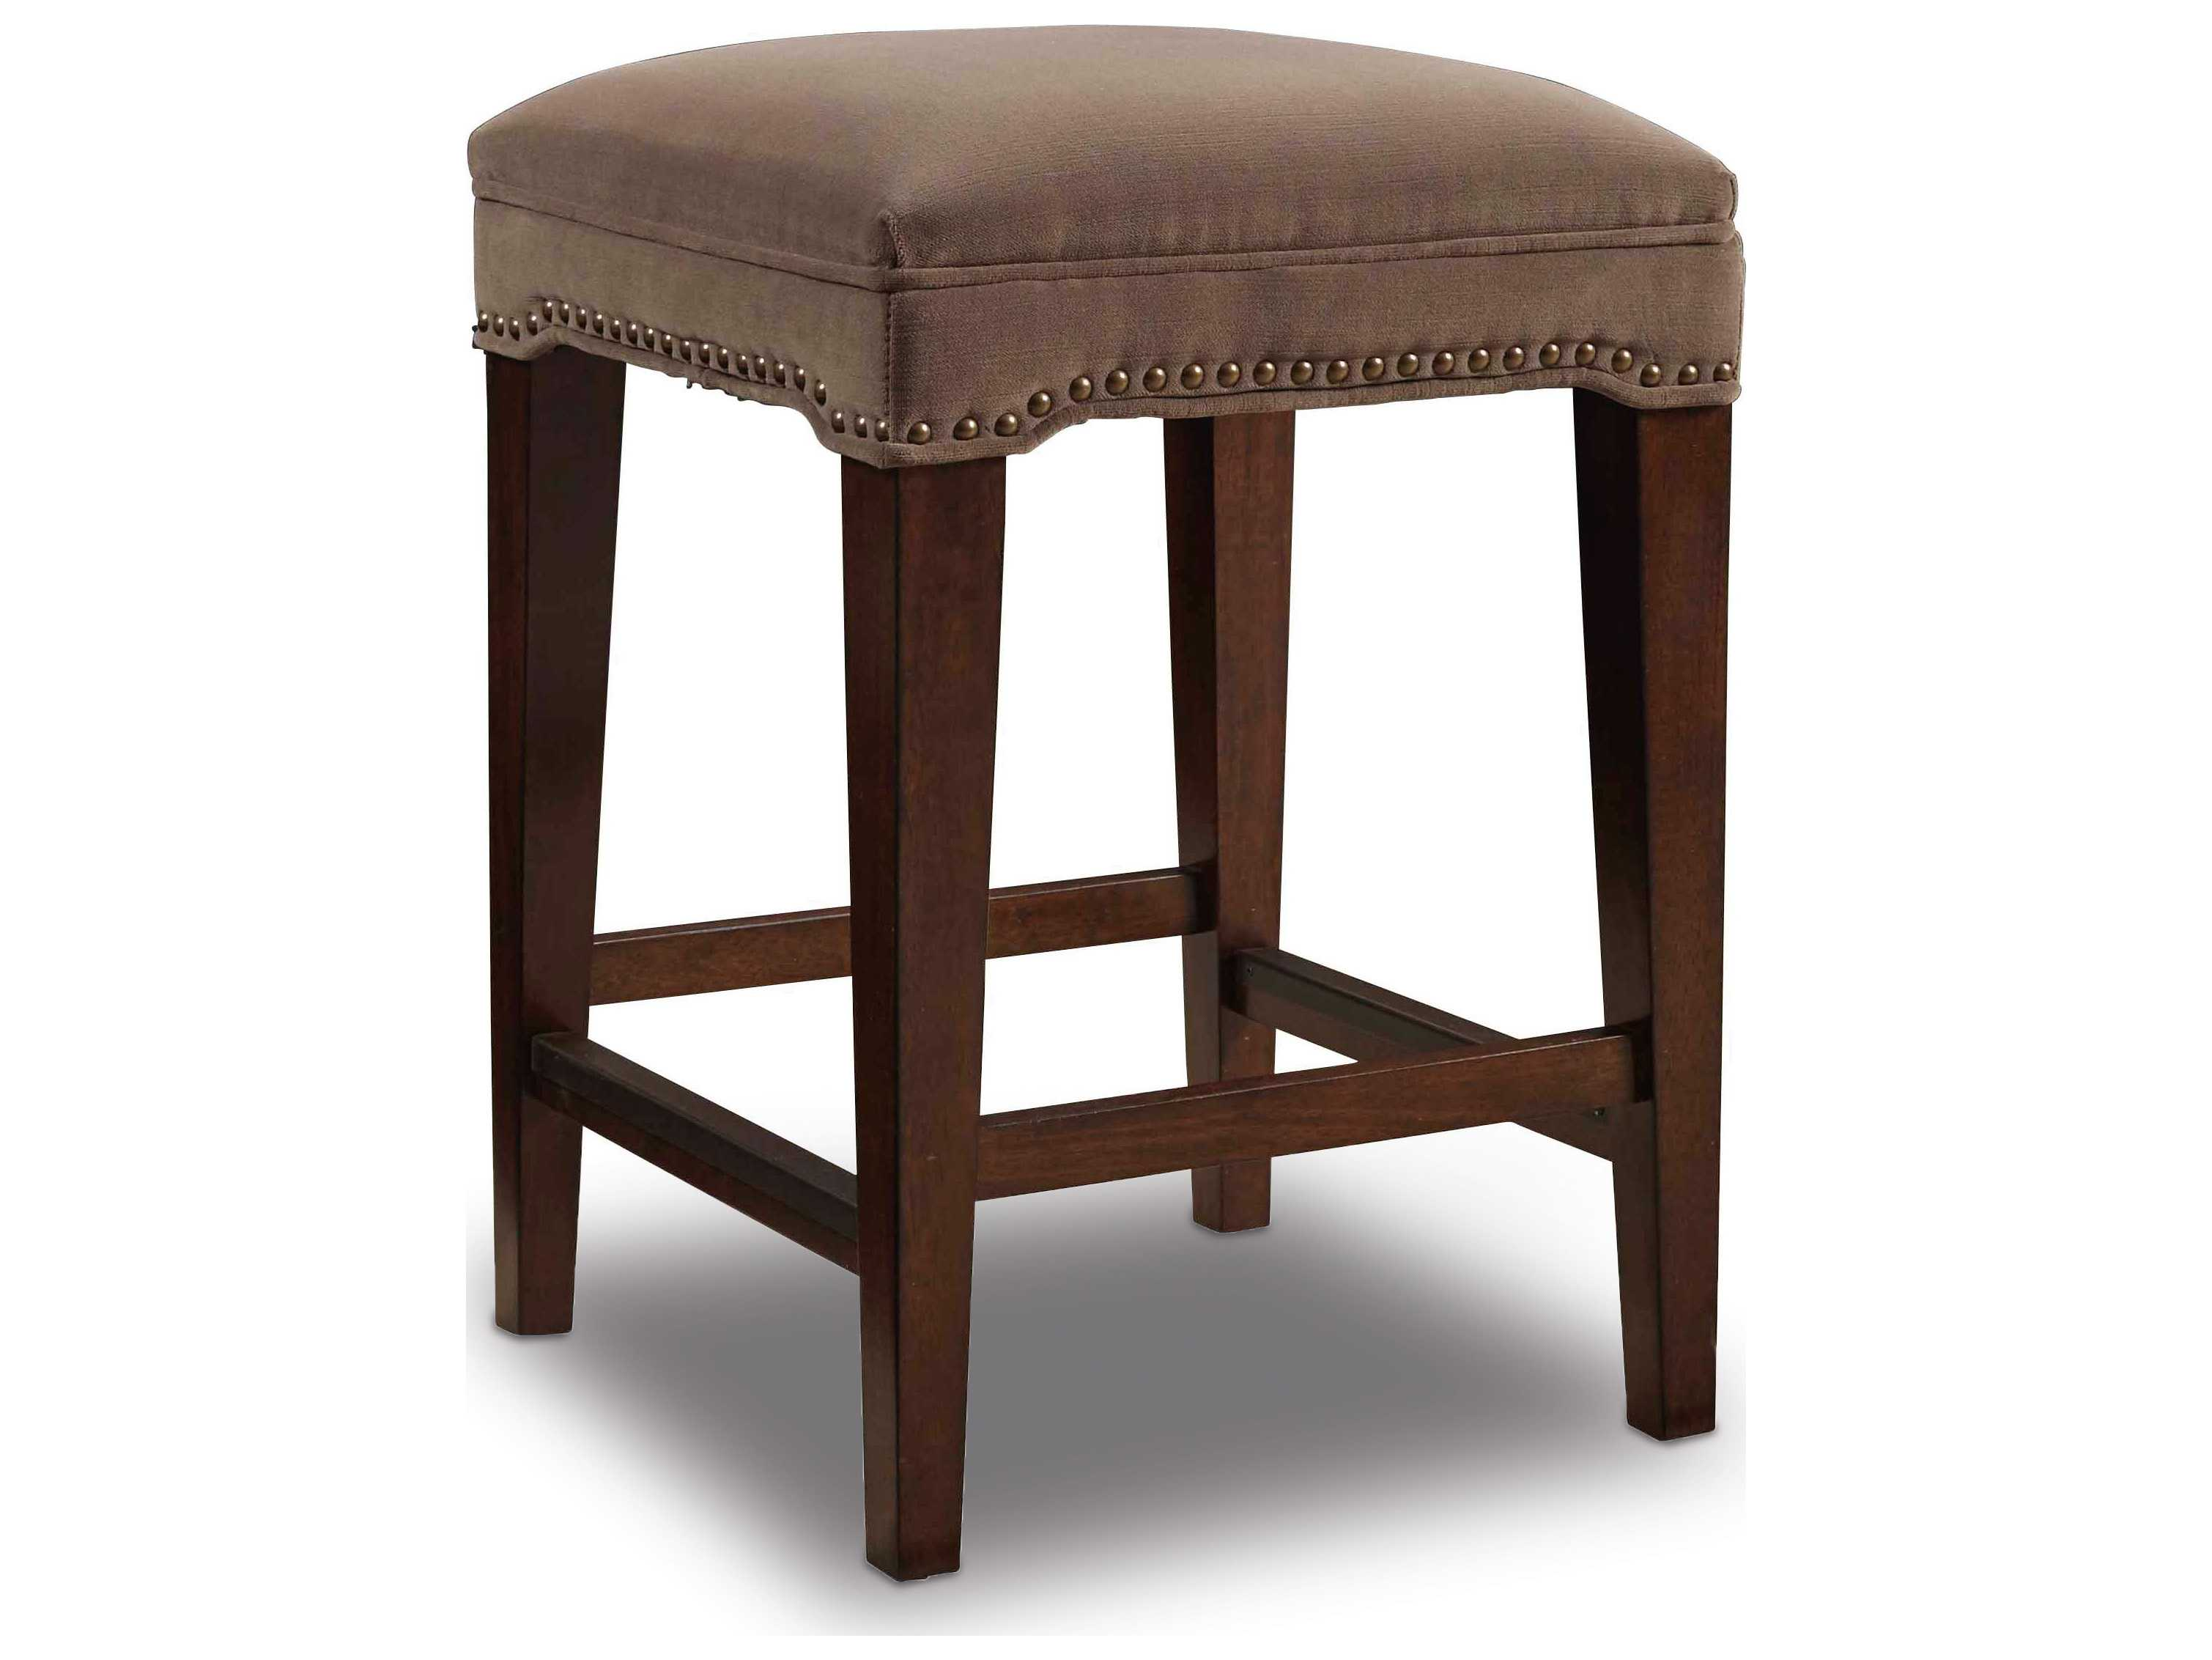 Hooker Furniture Skyline Chablis Backless Counter Stool